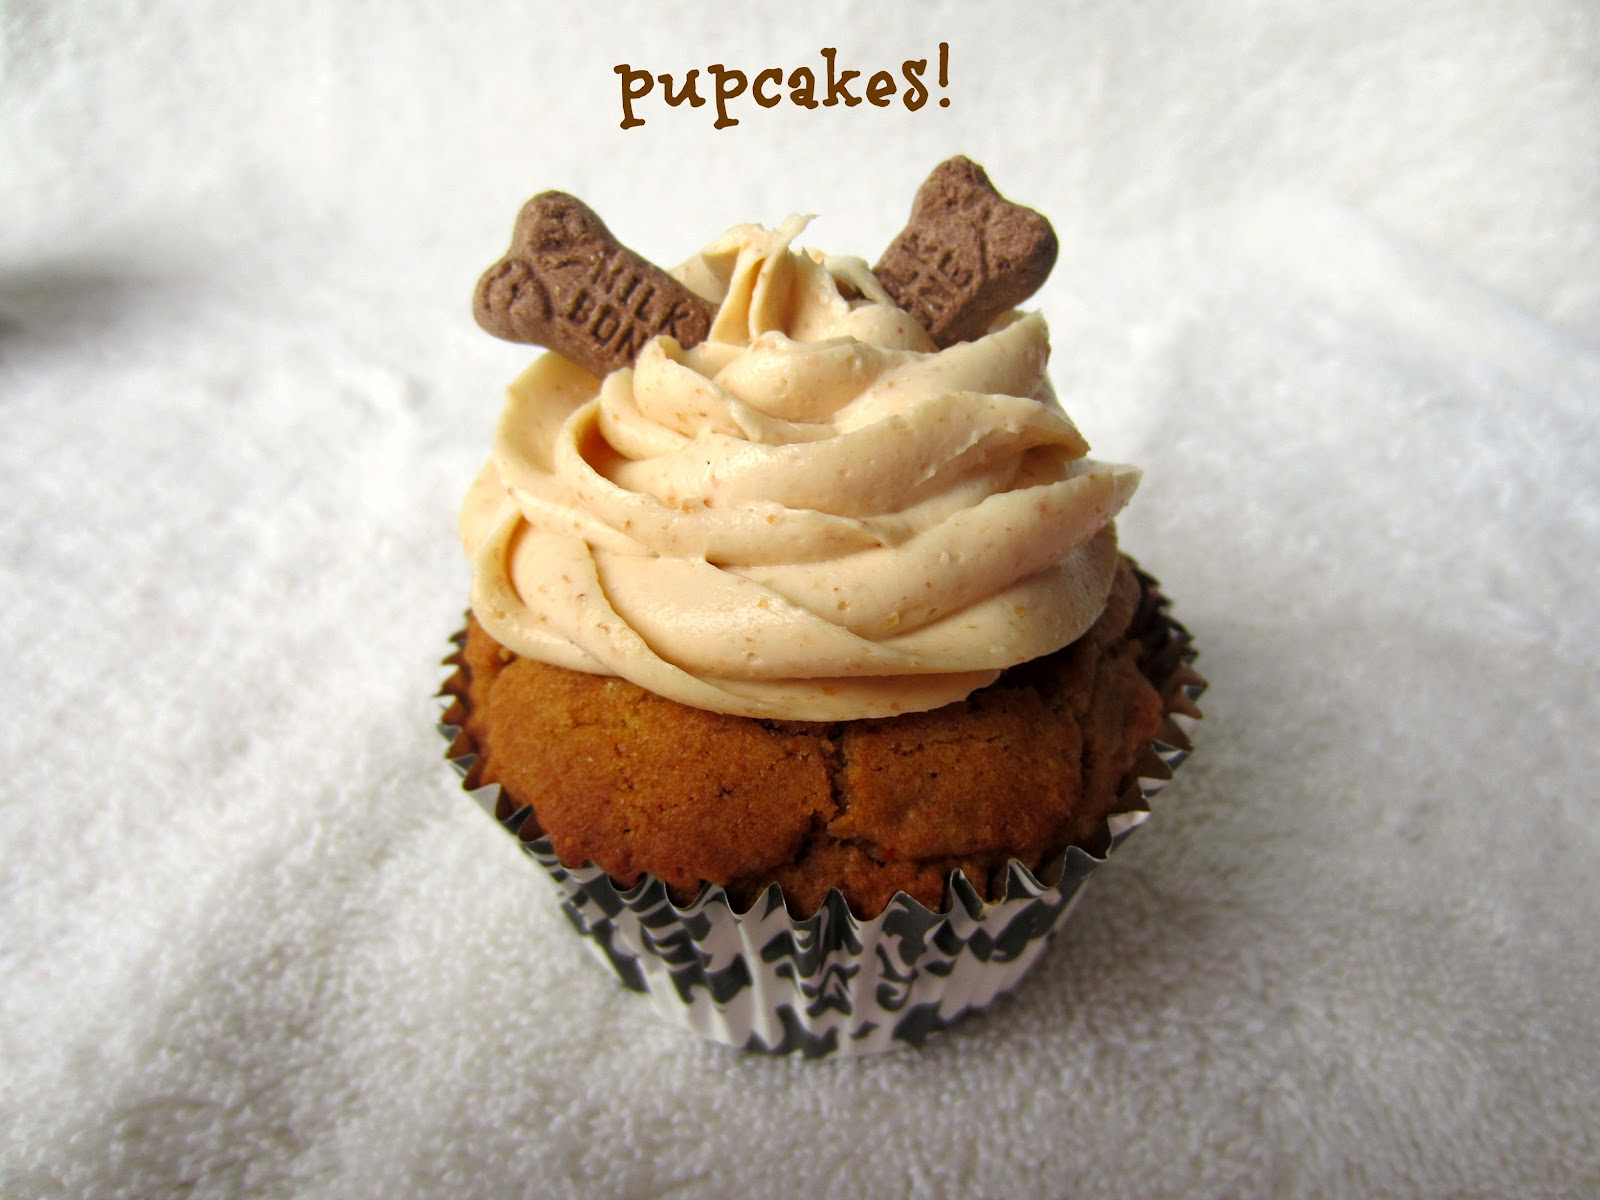 Sugarcoated Pupcakes A Cupcake For Your Canine